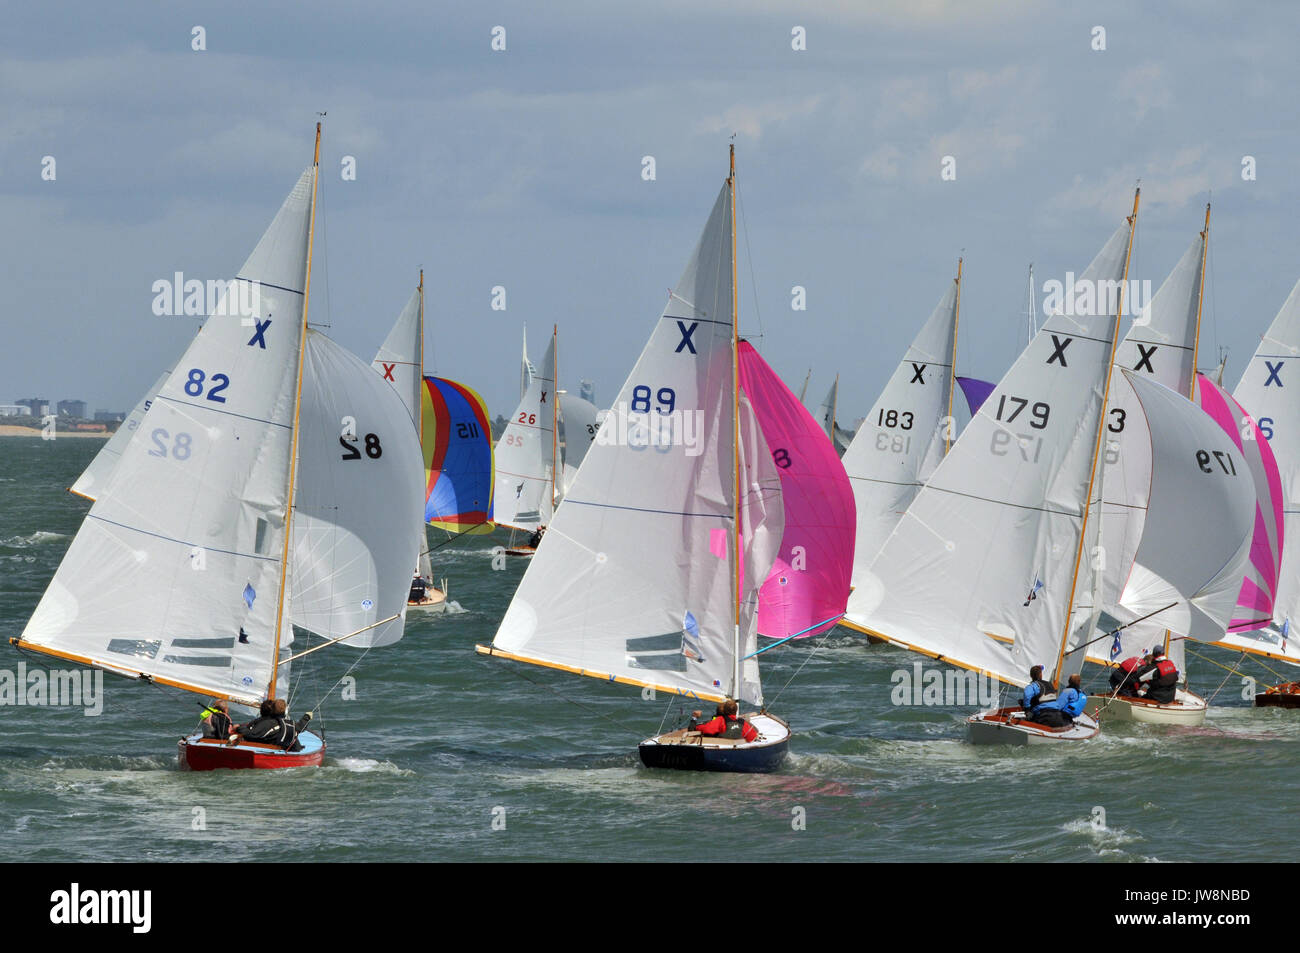 Cowes week atmosphere lends property sponsors yachts an yachting regattas royal yacht squadron crowded streets and party's summer seaside holiday - Stock Image